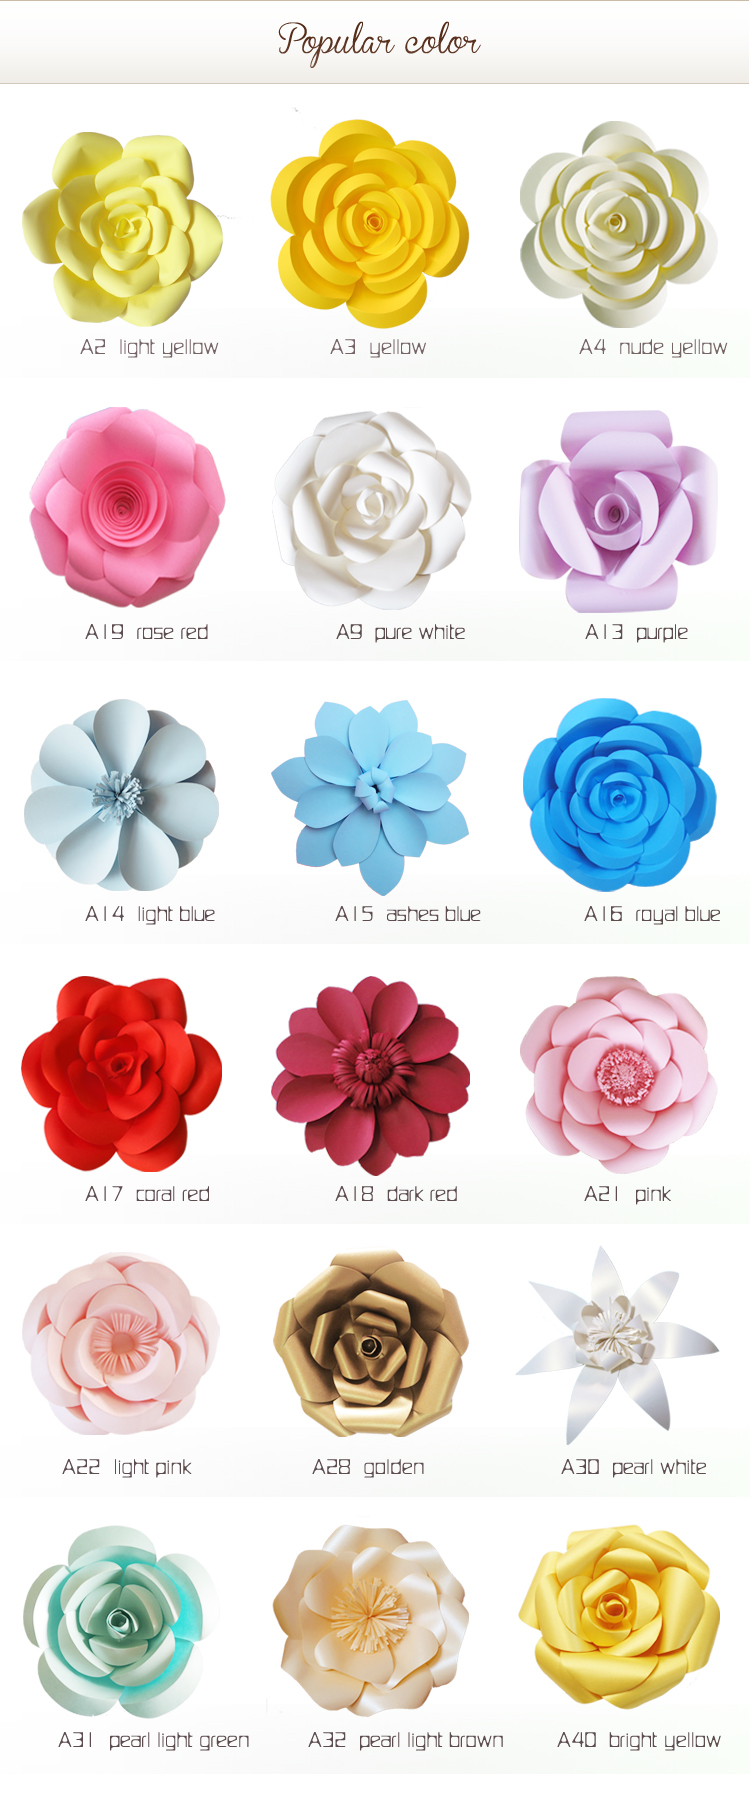 Church Giant Wedding Paper Flower On Sale - Buy Paper Flower On Sale ...